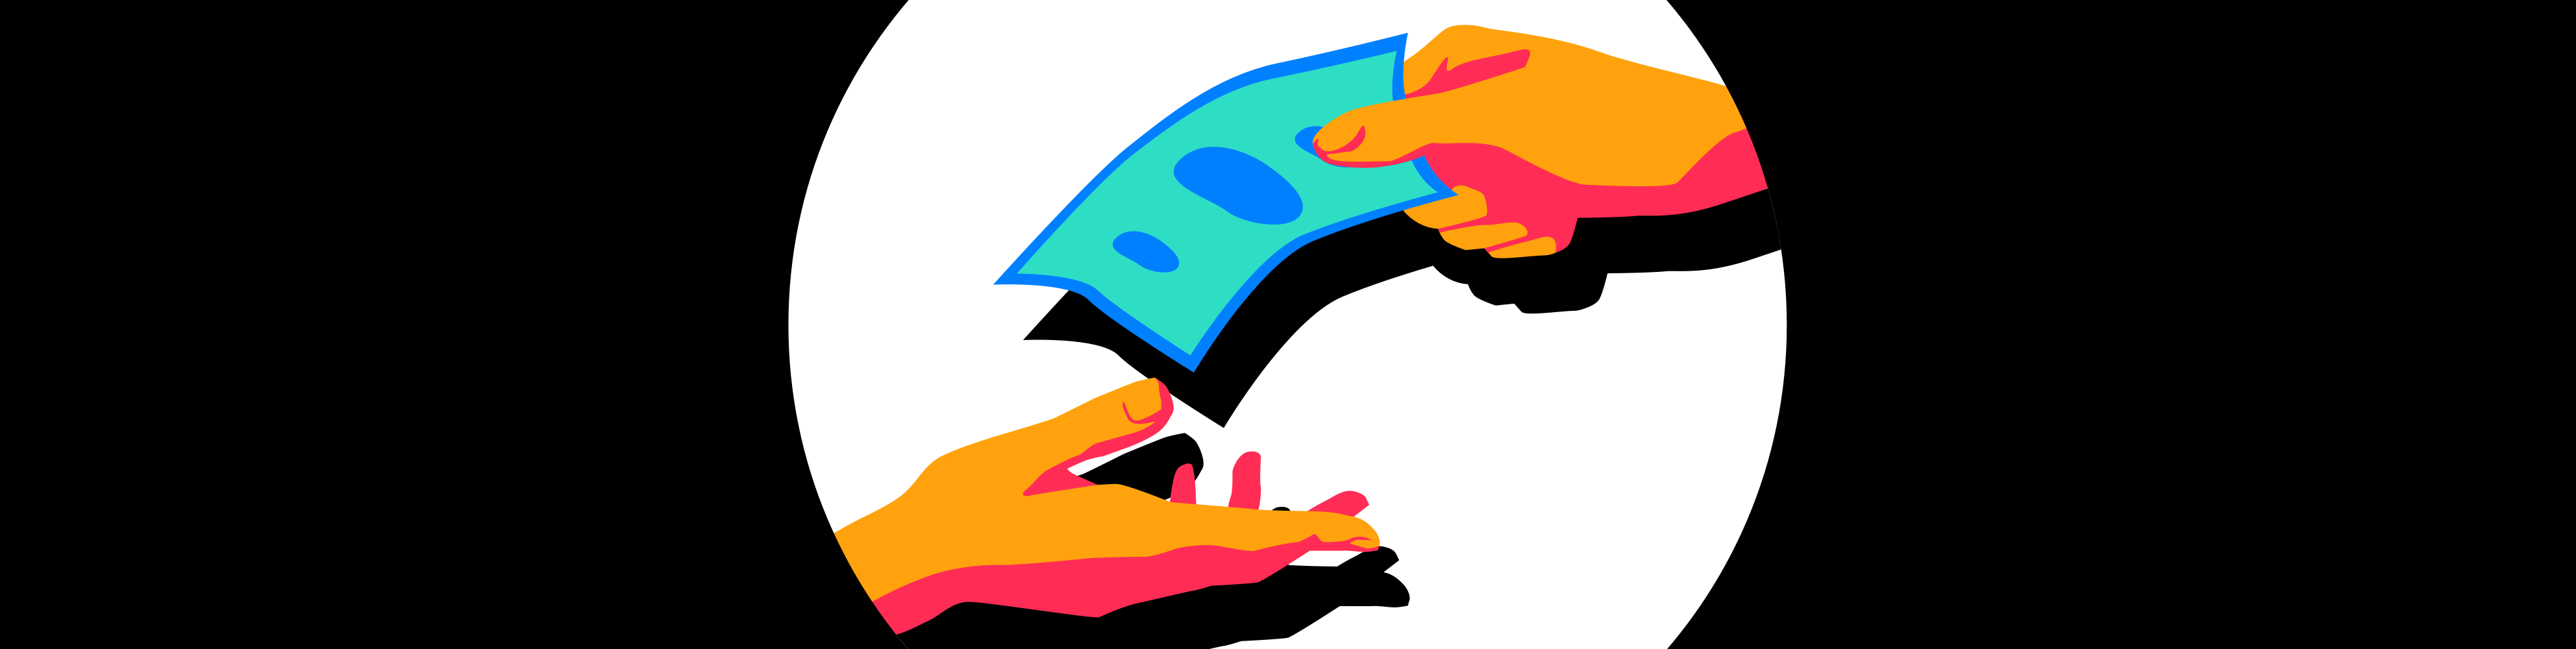 Illustration of a hand giving 1 dollar to another